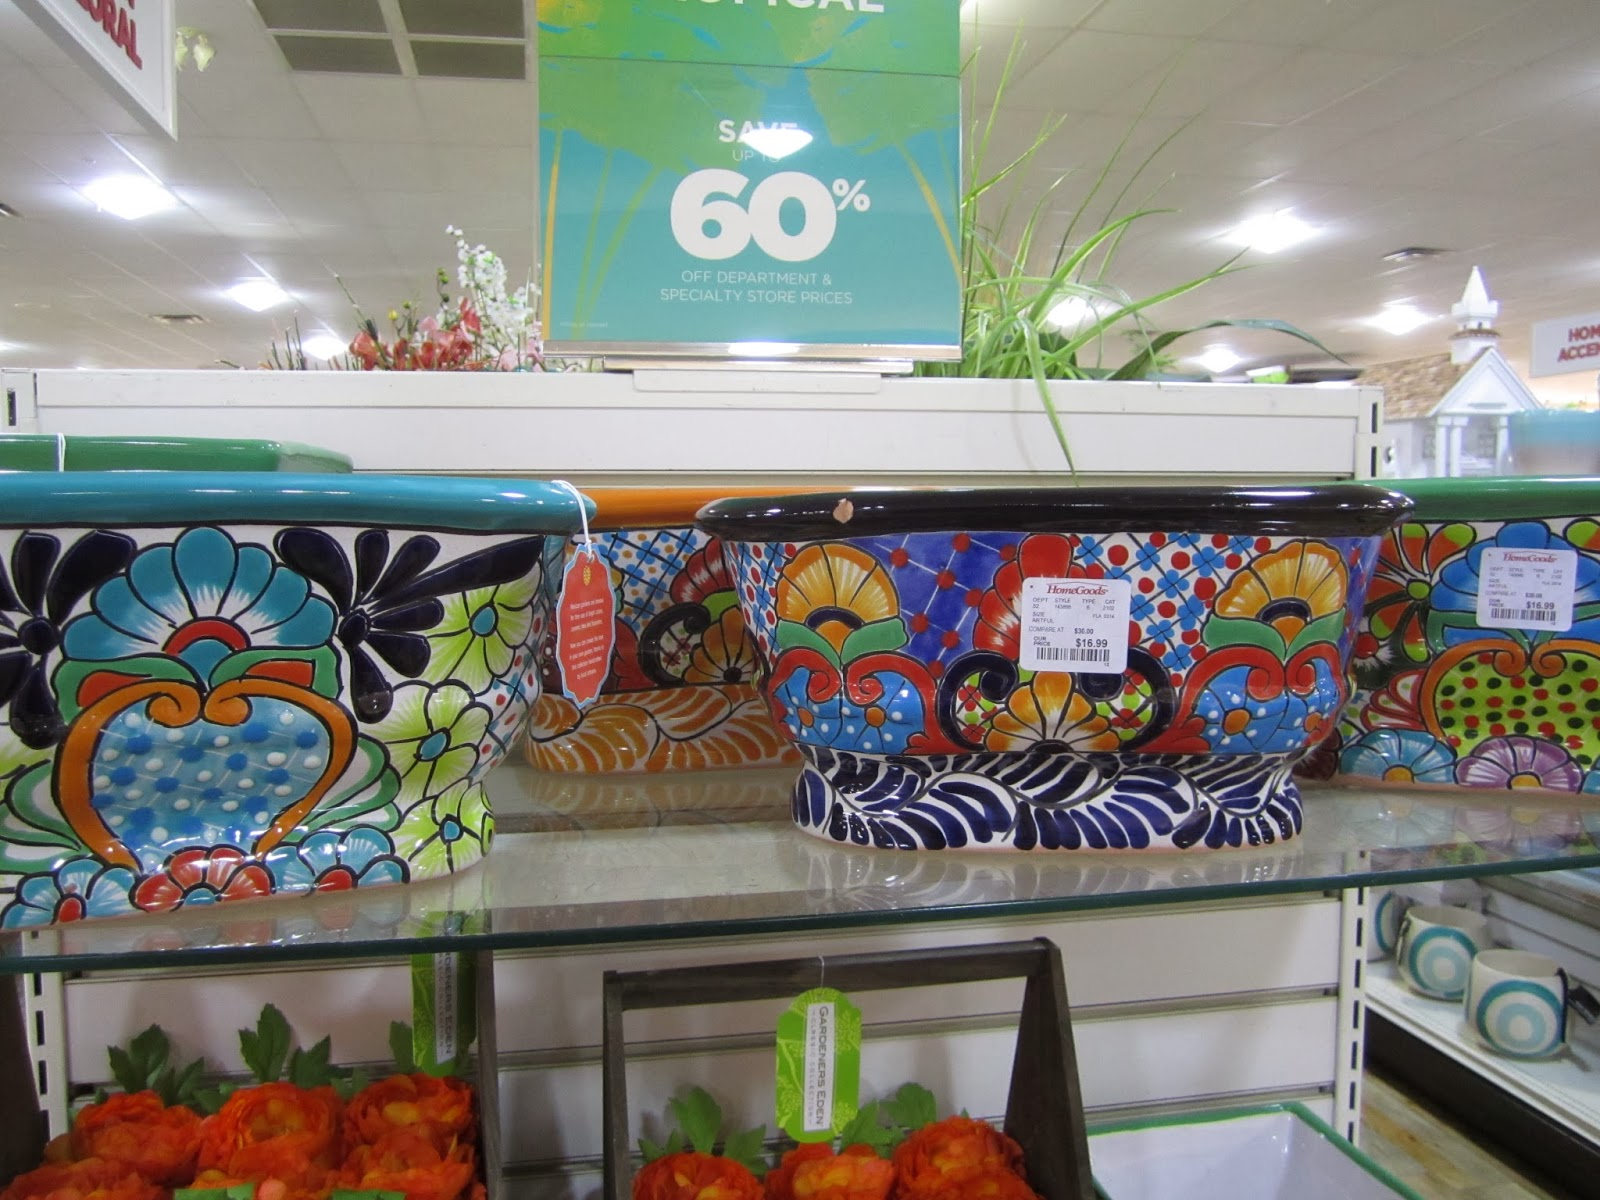 Ordinaire Inspire Bohemia: TJMaxx Homegoods Heaven: Garden Stools, Planters And Decor  For Spring, Plus The African Bazaar Is Back!